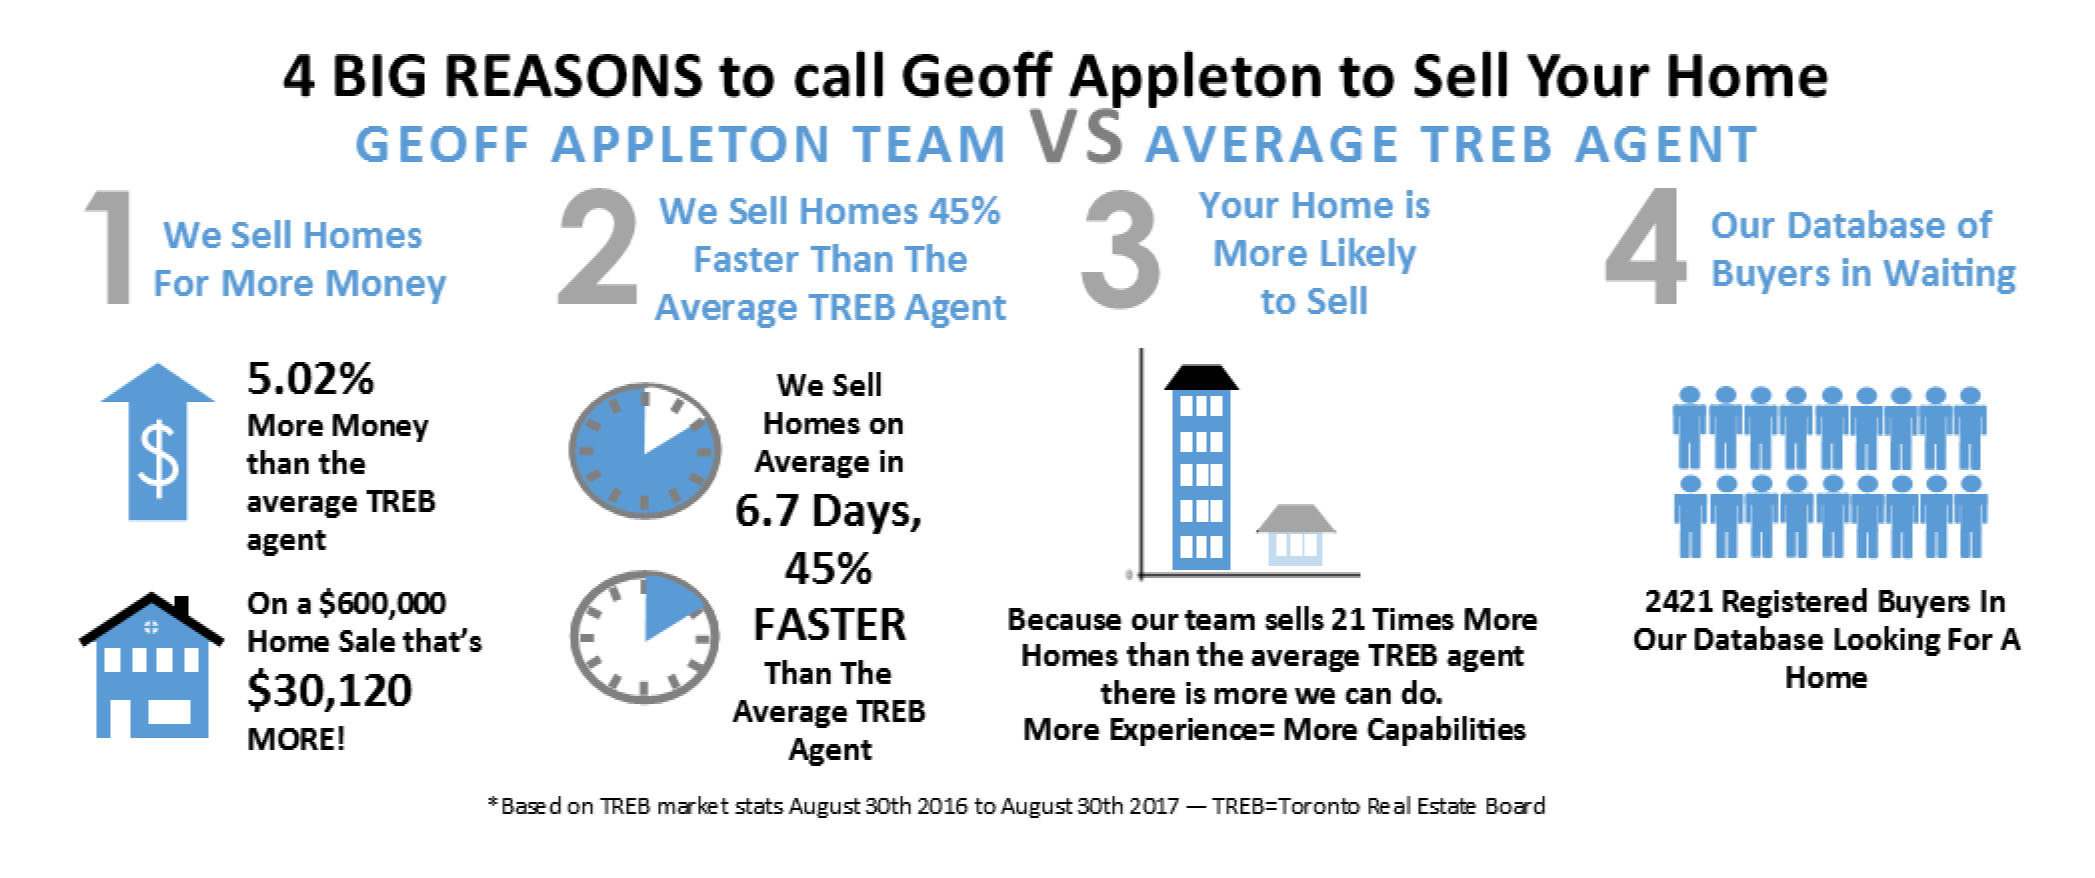 4 Big Reasons to call the Geoff Appleton Team 2018.png